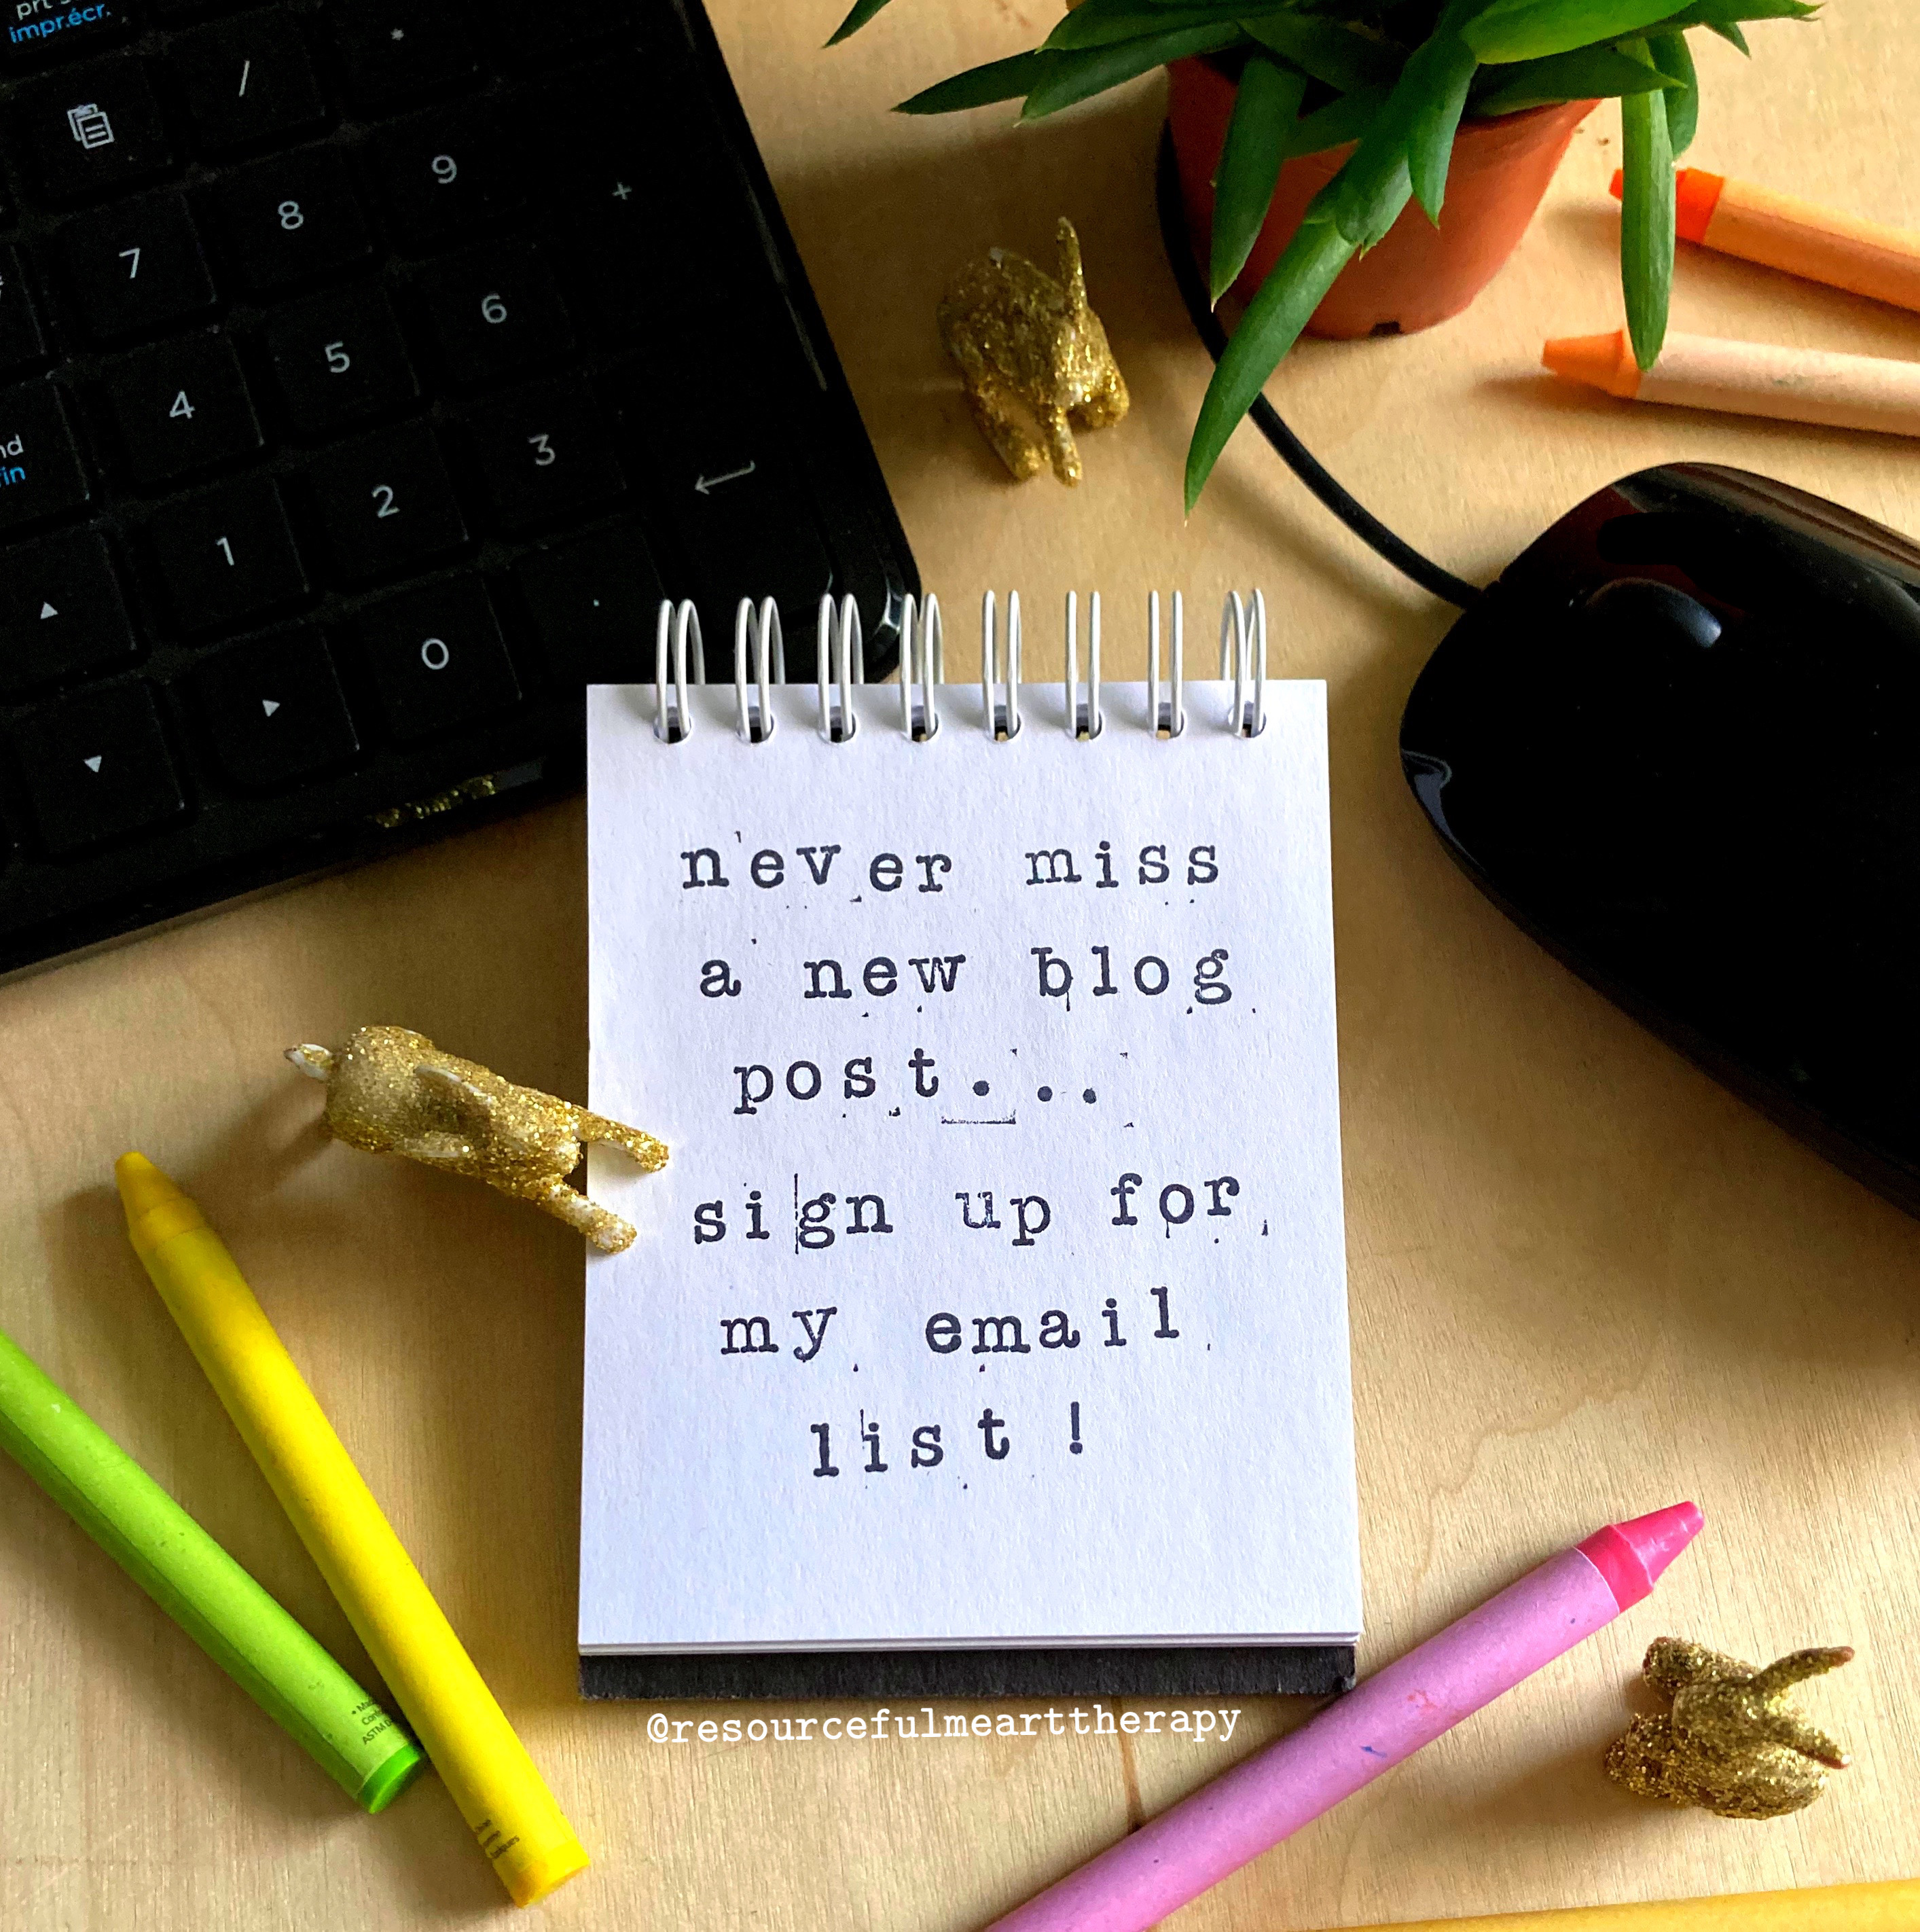 """crayons, plastic bunnies, and a notepad beside a keyboard that says """"never miss a new blog post... sign up for my email list!"""""""